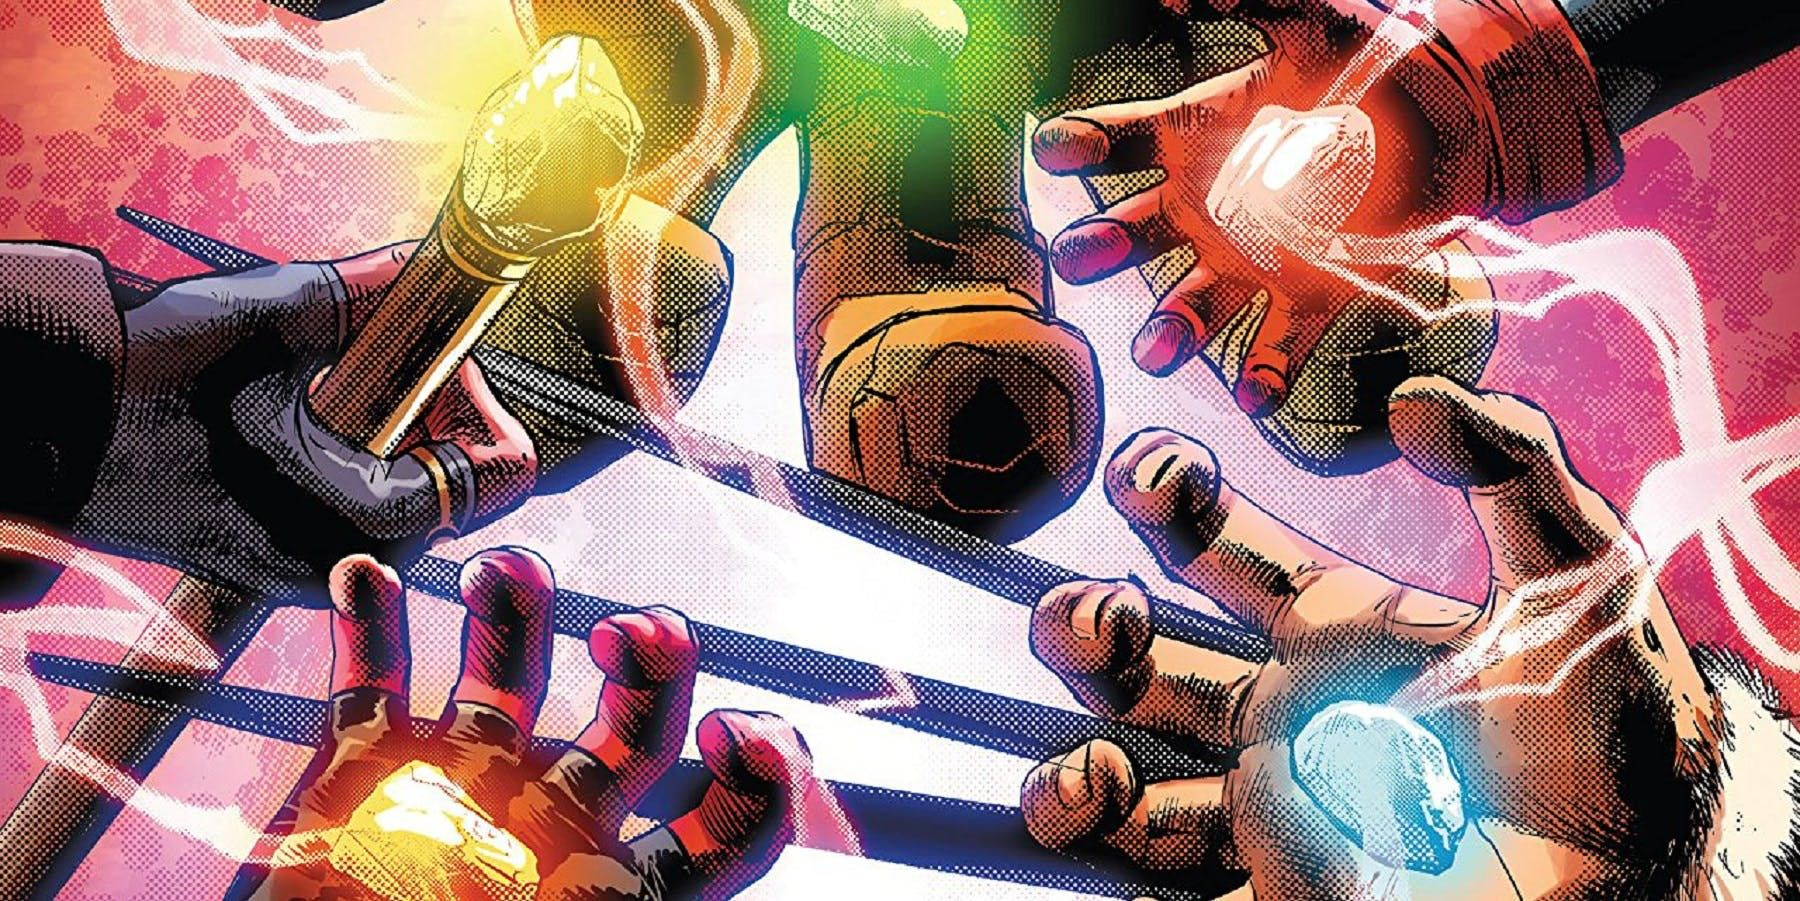 Infinity Countdown Teases A Full Armor to Wield the Stones | CBR